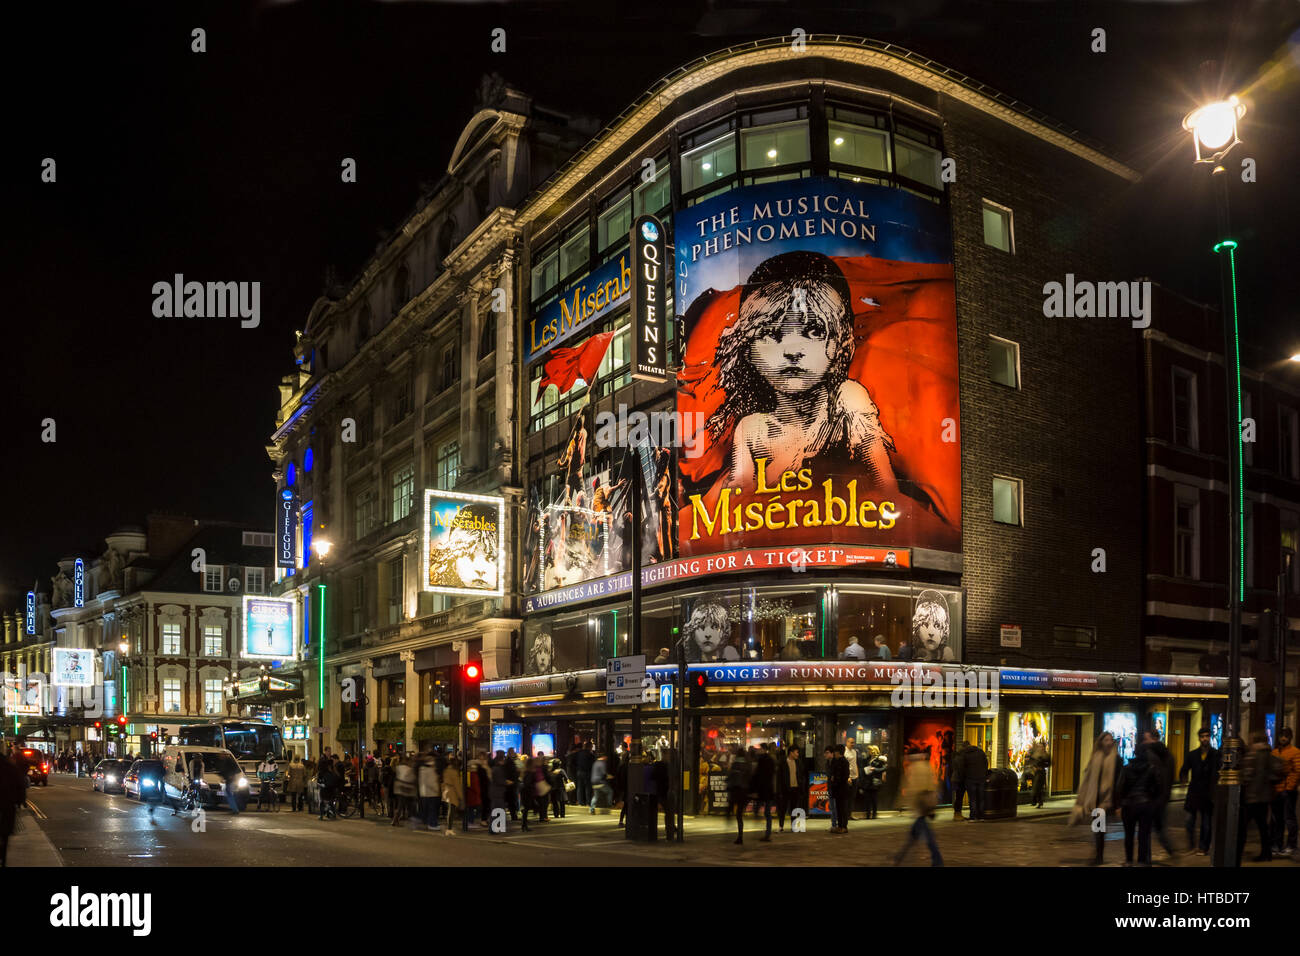 London's West End at night with Les Miserables at Queens Theatre in Shaftesbury Avenue. Stock Photo